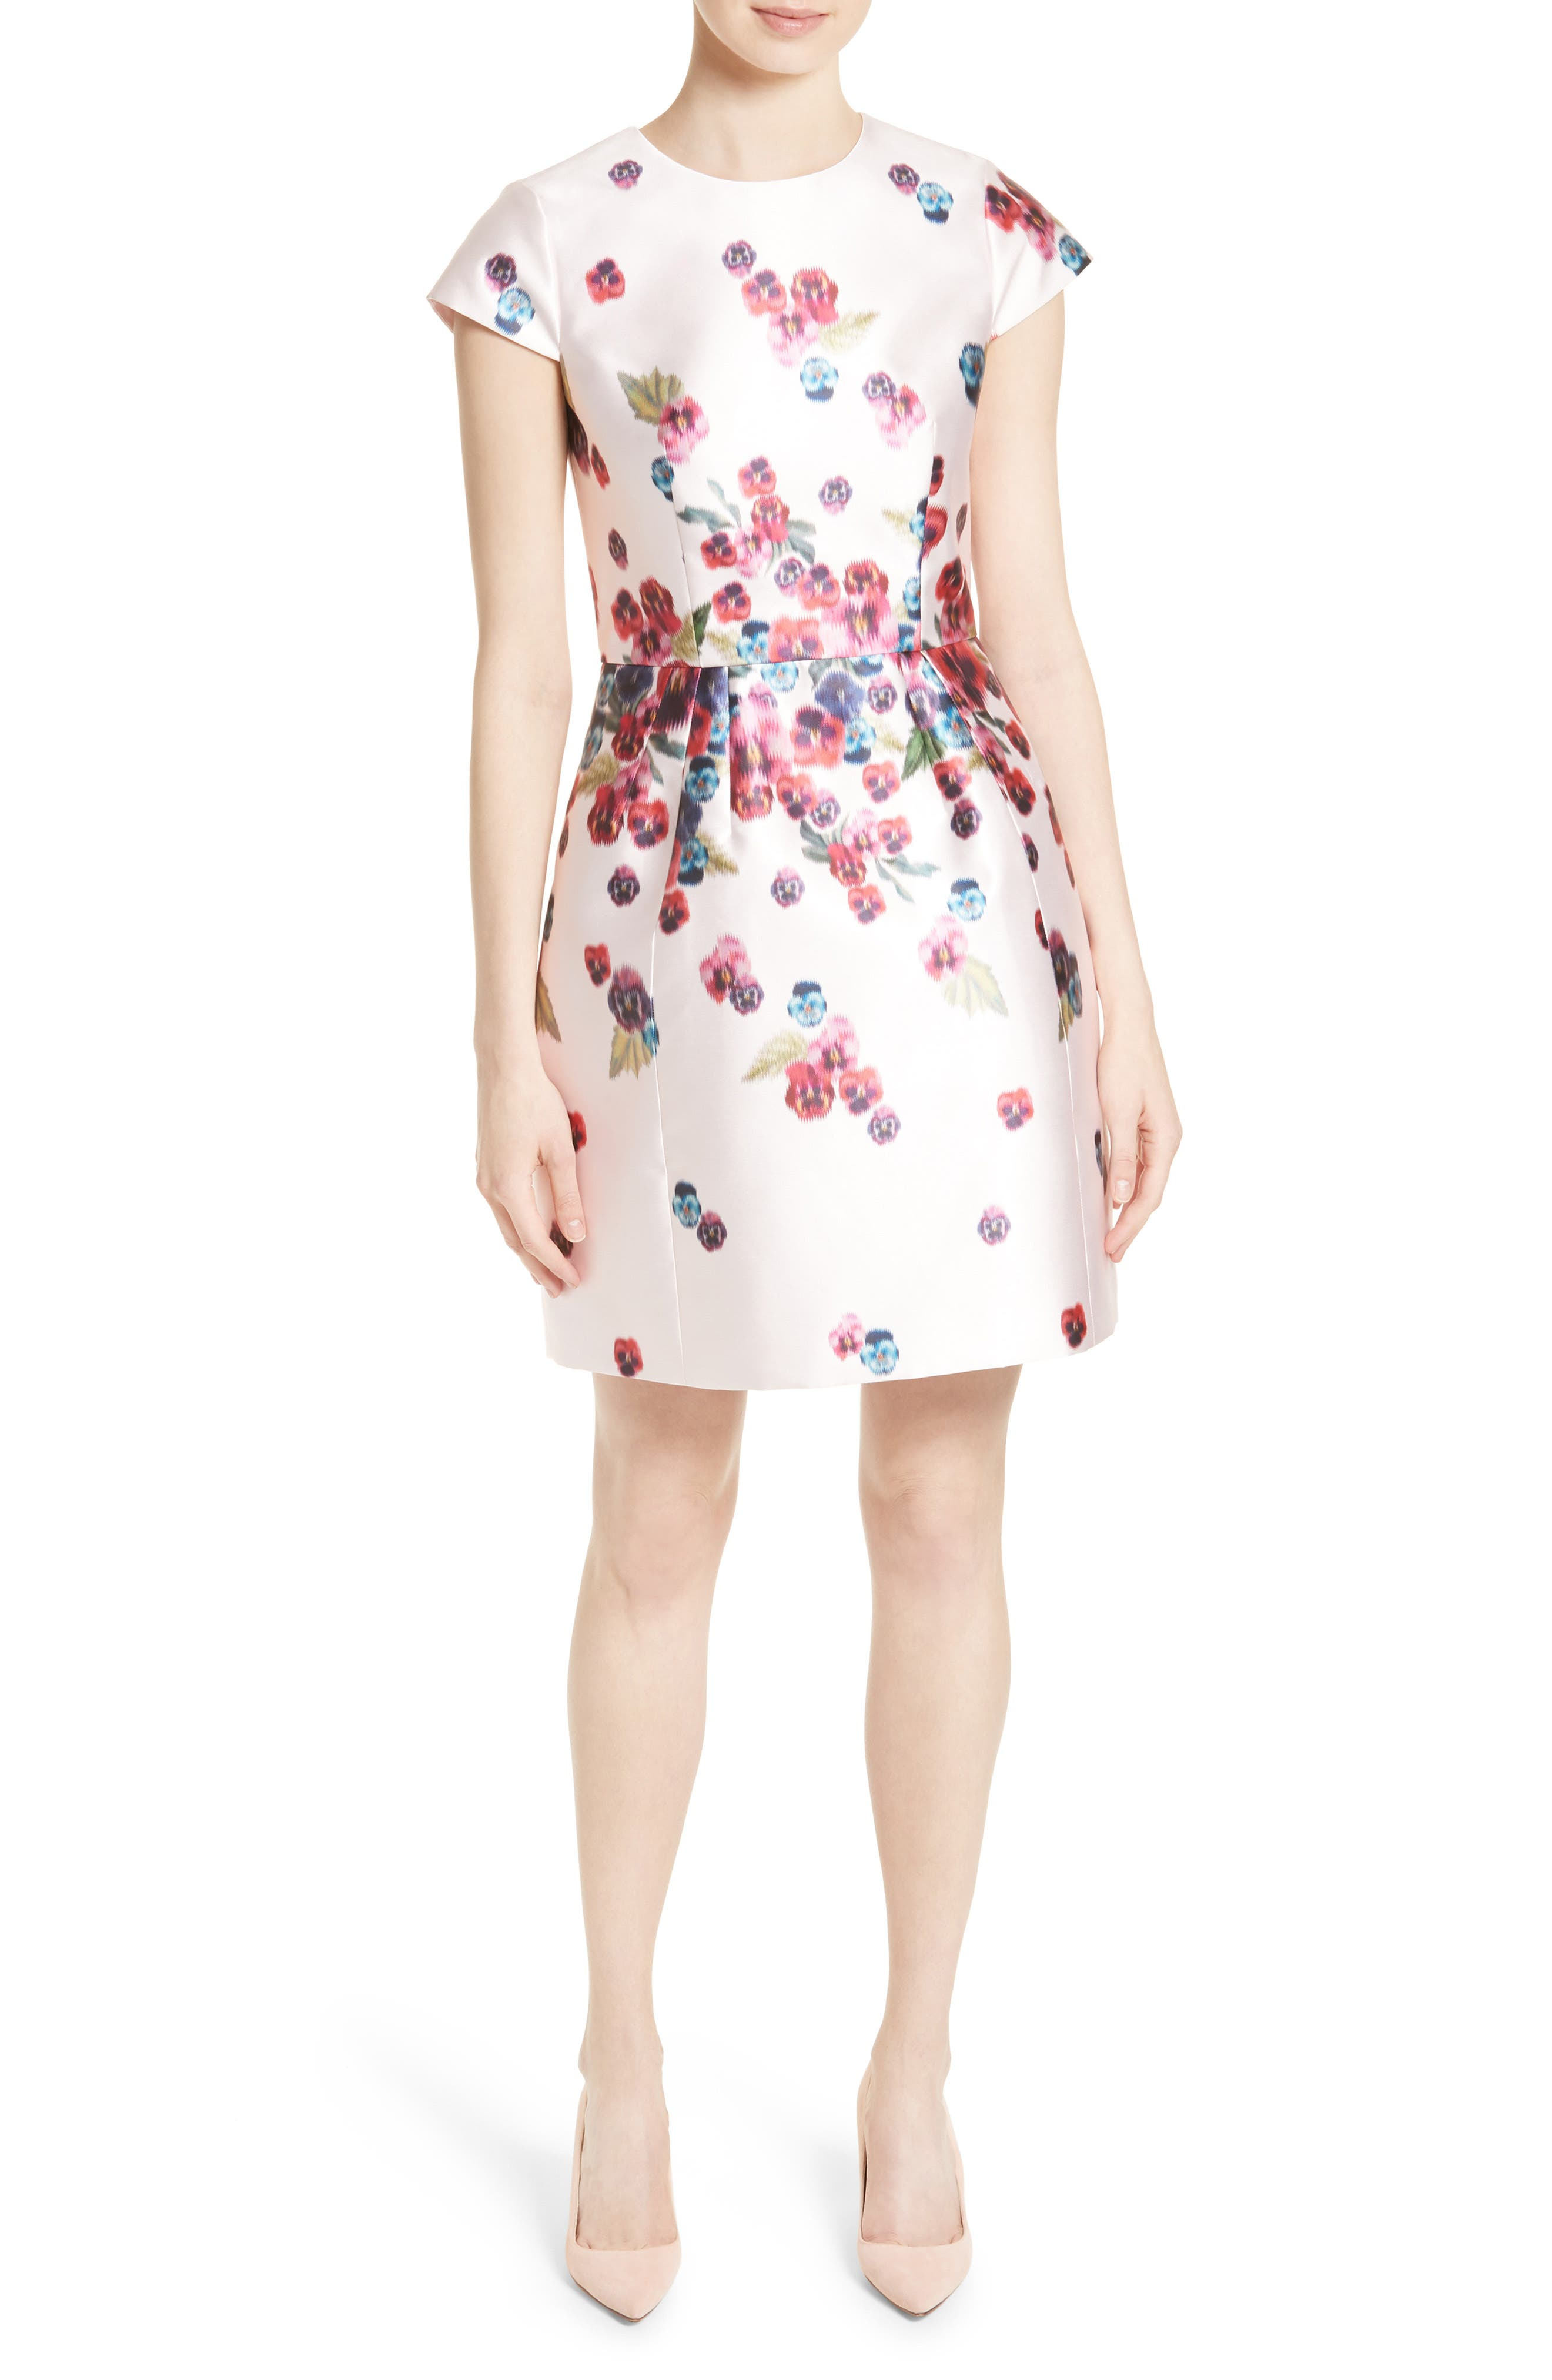 Ibia Floral Print Sheath Dress,                         Main,                         color, Baby Pink